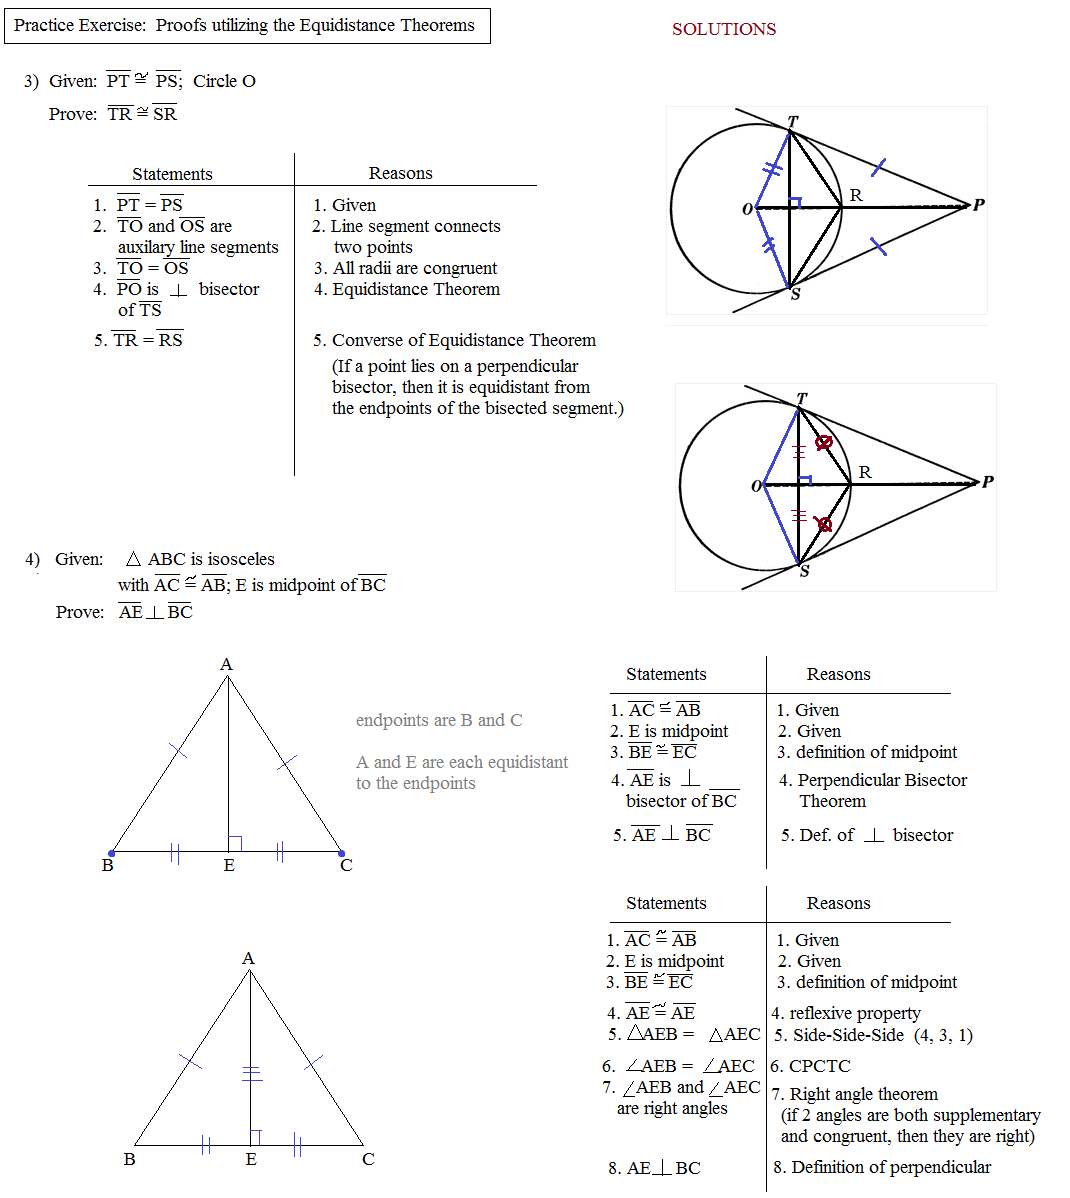 geometry theroems These geometry worksheets consist of angle worksheets, circles worksheets, coordinate geometry worksheets, quadrilaterals and polygons worksheets, perimeter and area worksheets, pythagorean theorem worksheets, surface area and volume worksheets, triangle worksheets, and trigonometry worksheets for your use.